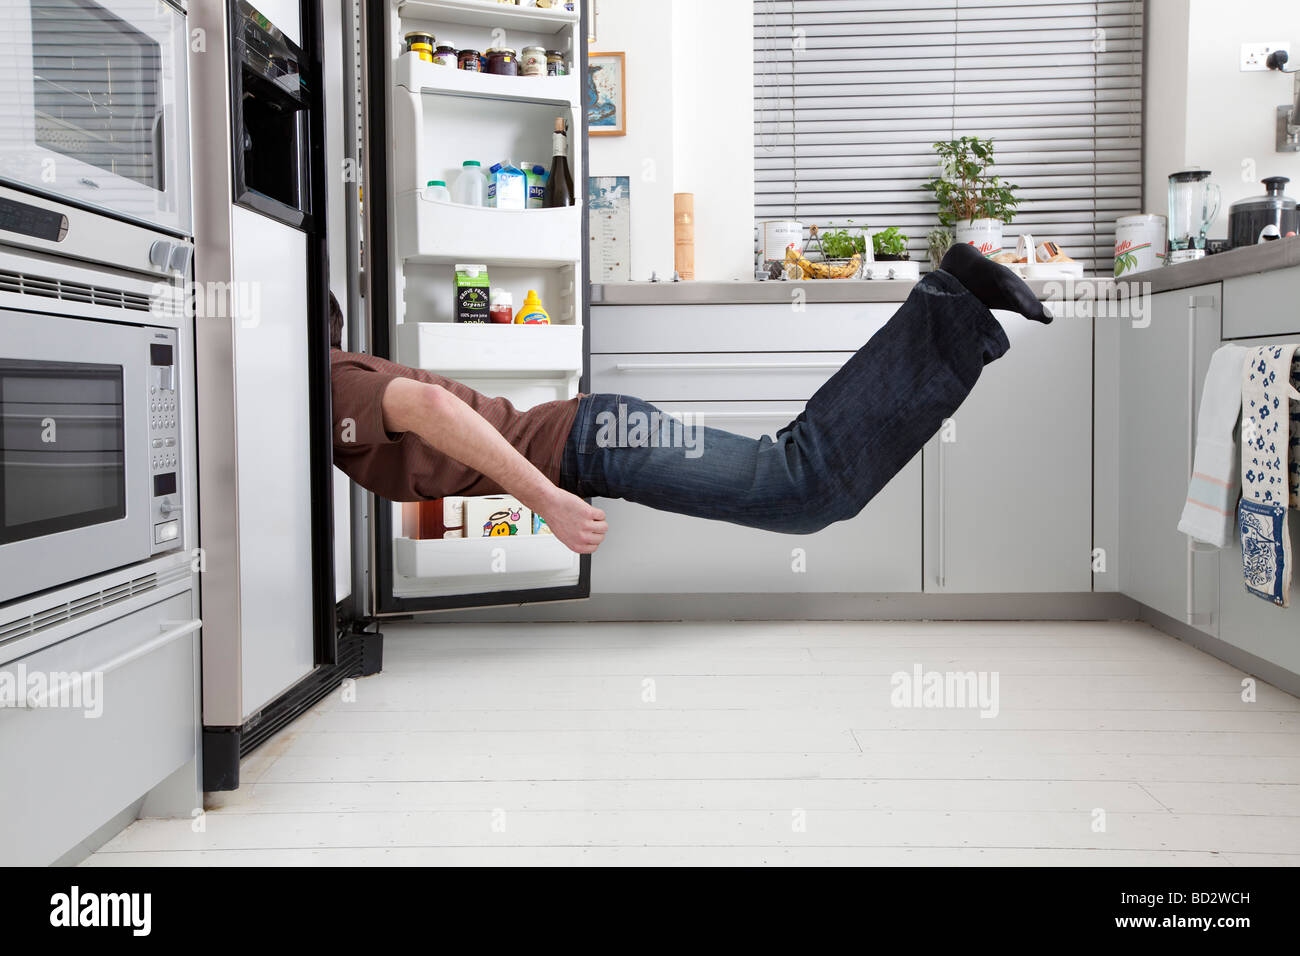 man looking in fridge - Stock Image